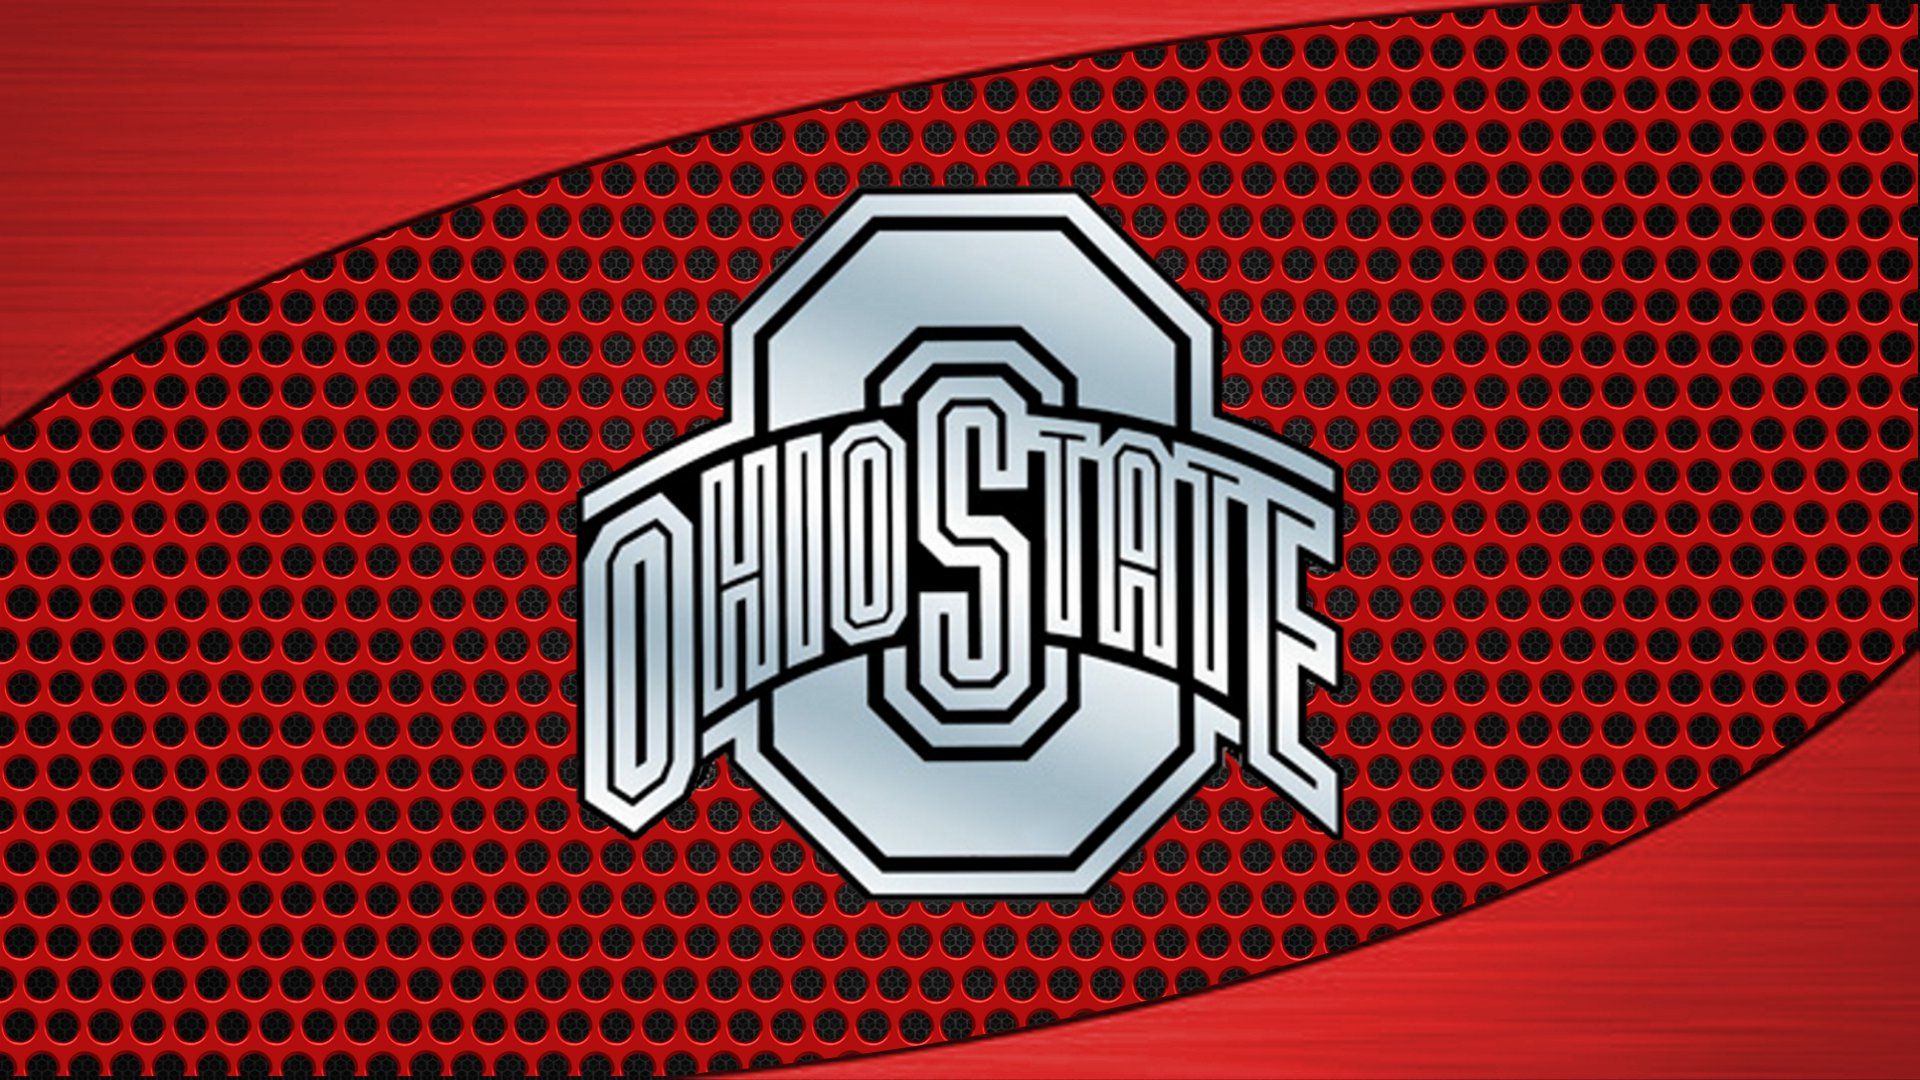 OSU Wallpaper 333   Ohio State Football Wallpaper 1920x1080